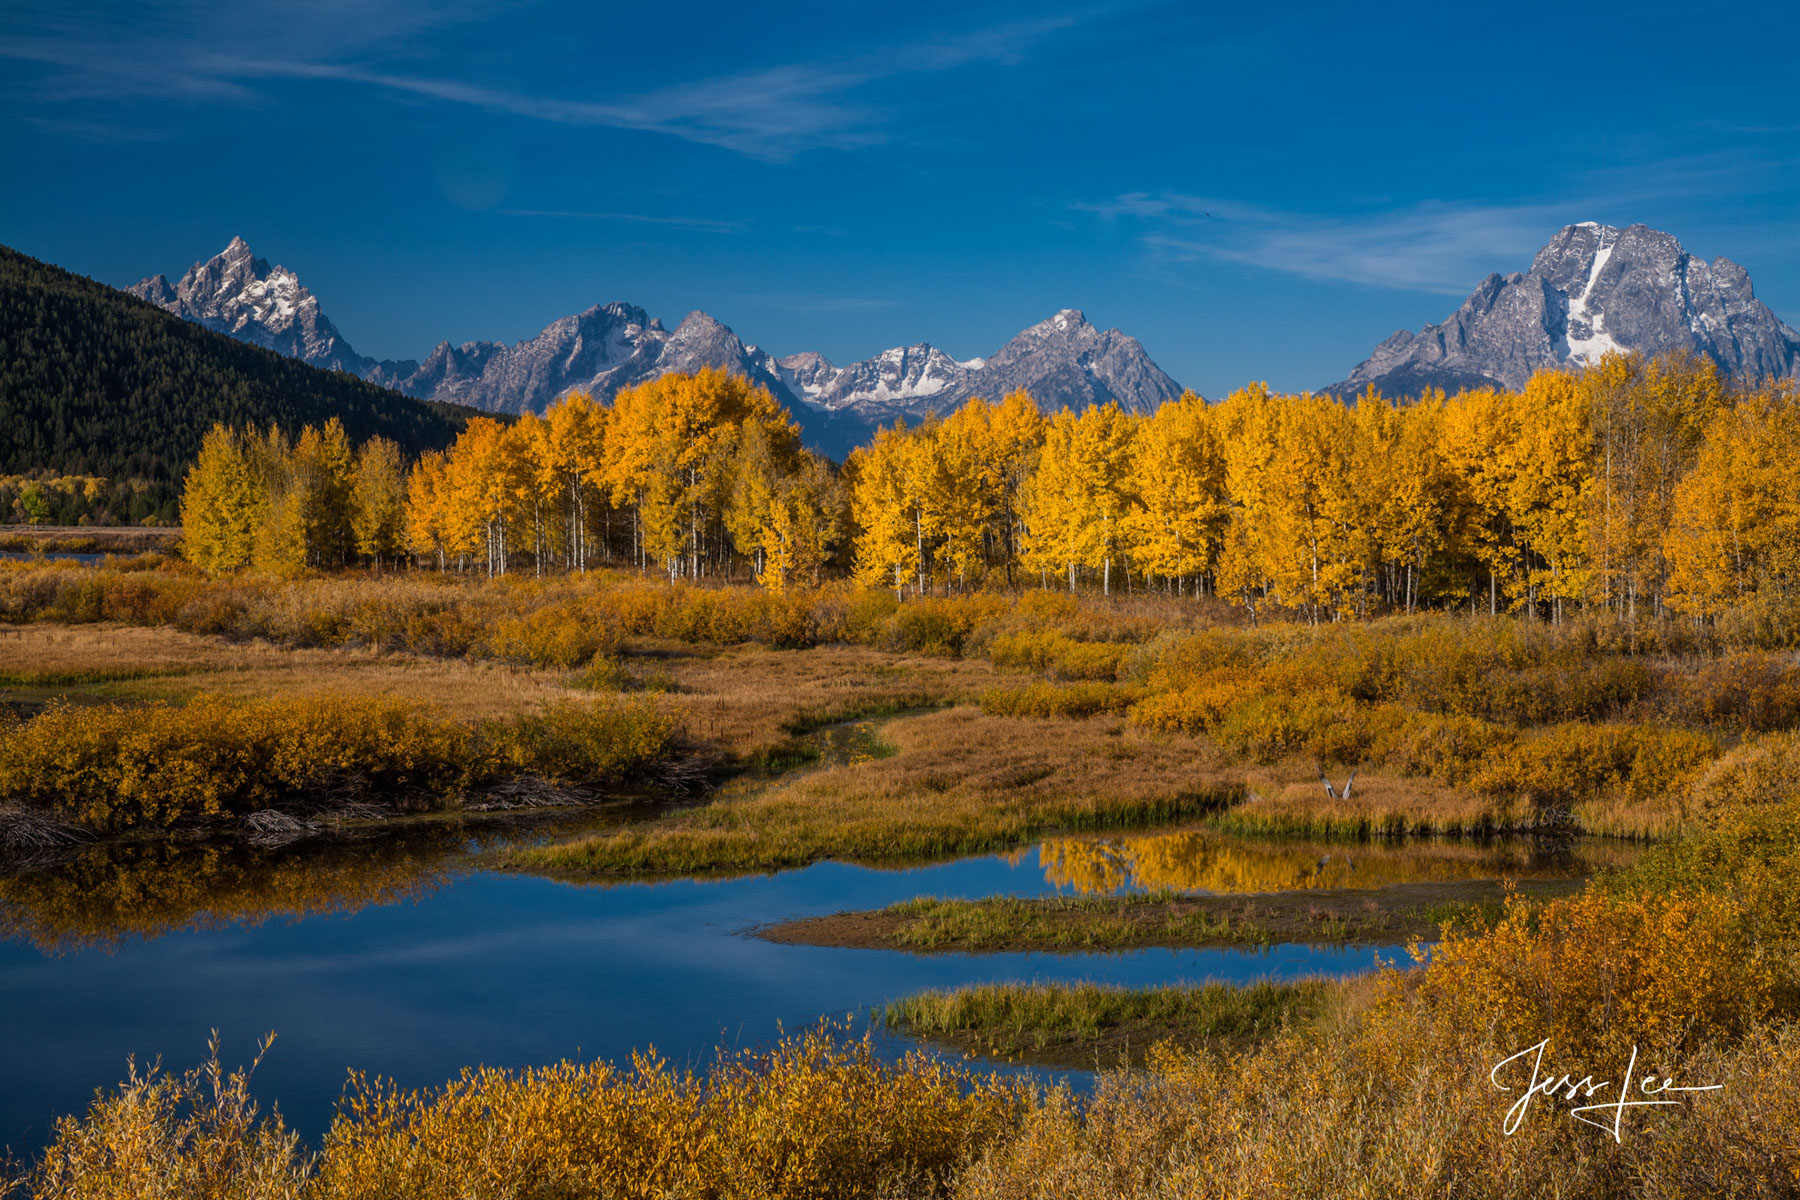 Limited Edition of 200 Fine Art Prints Teton Gold at the Snake River Oxbow. Exclusive high-resolution Museum Quality Fine Art...